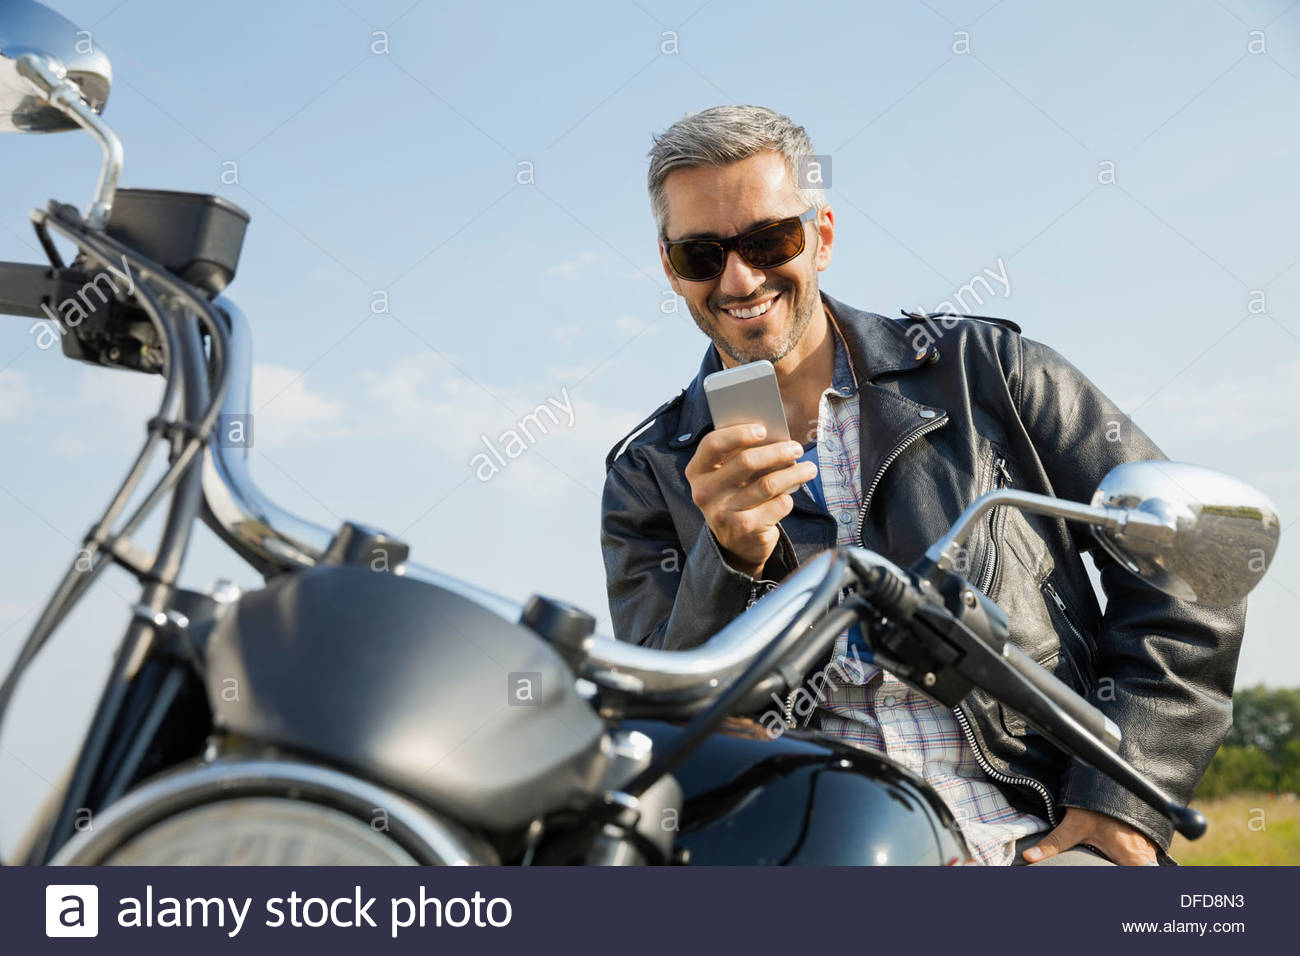 Man sitting on motorcycle and reading smart phone Stock Photo